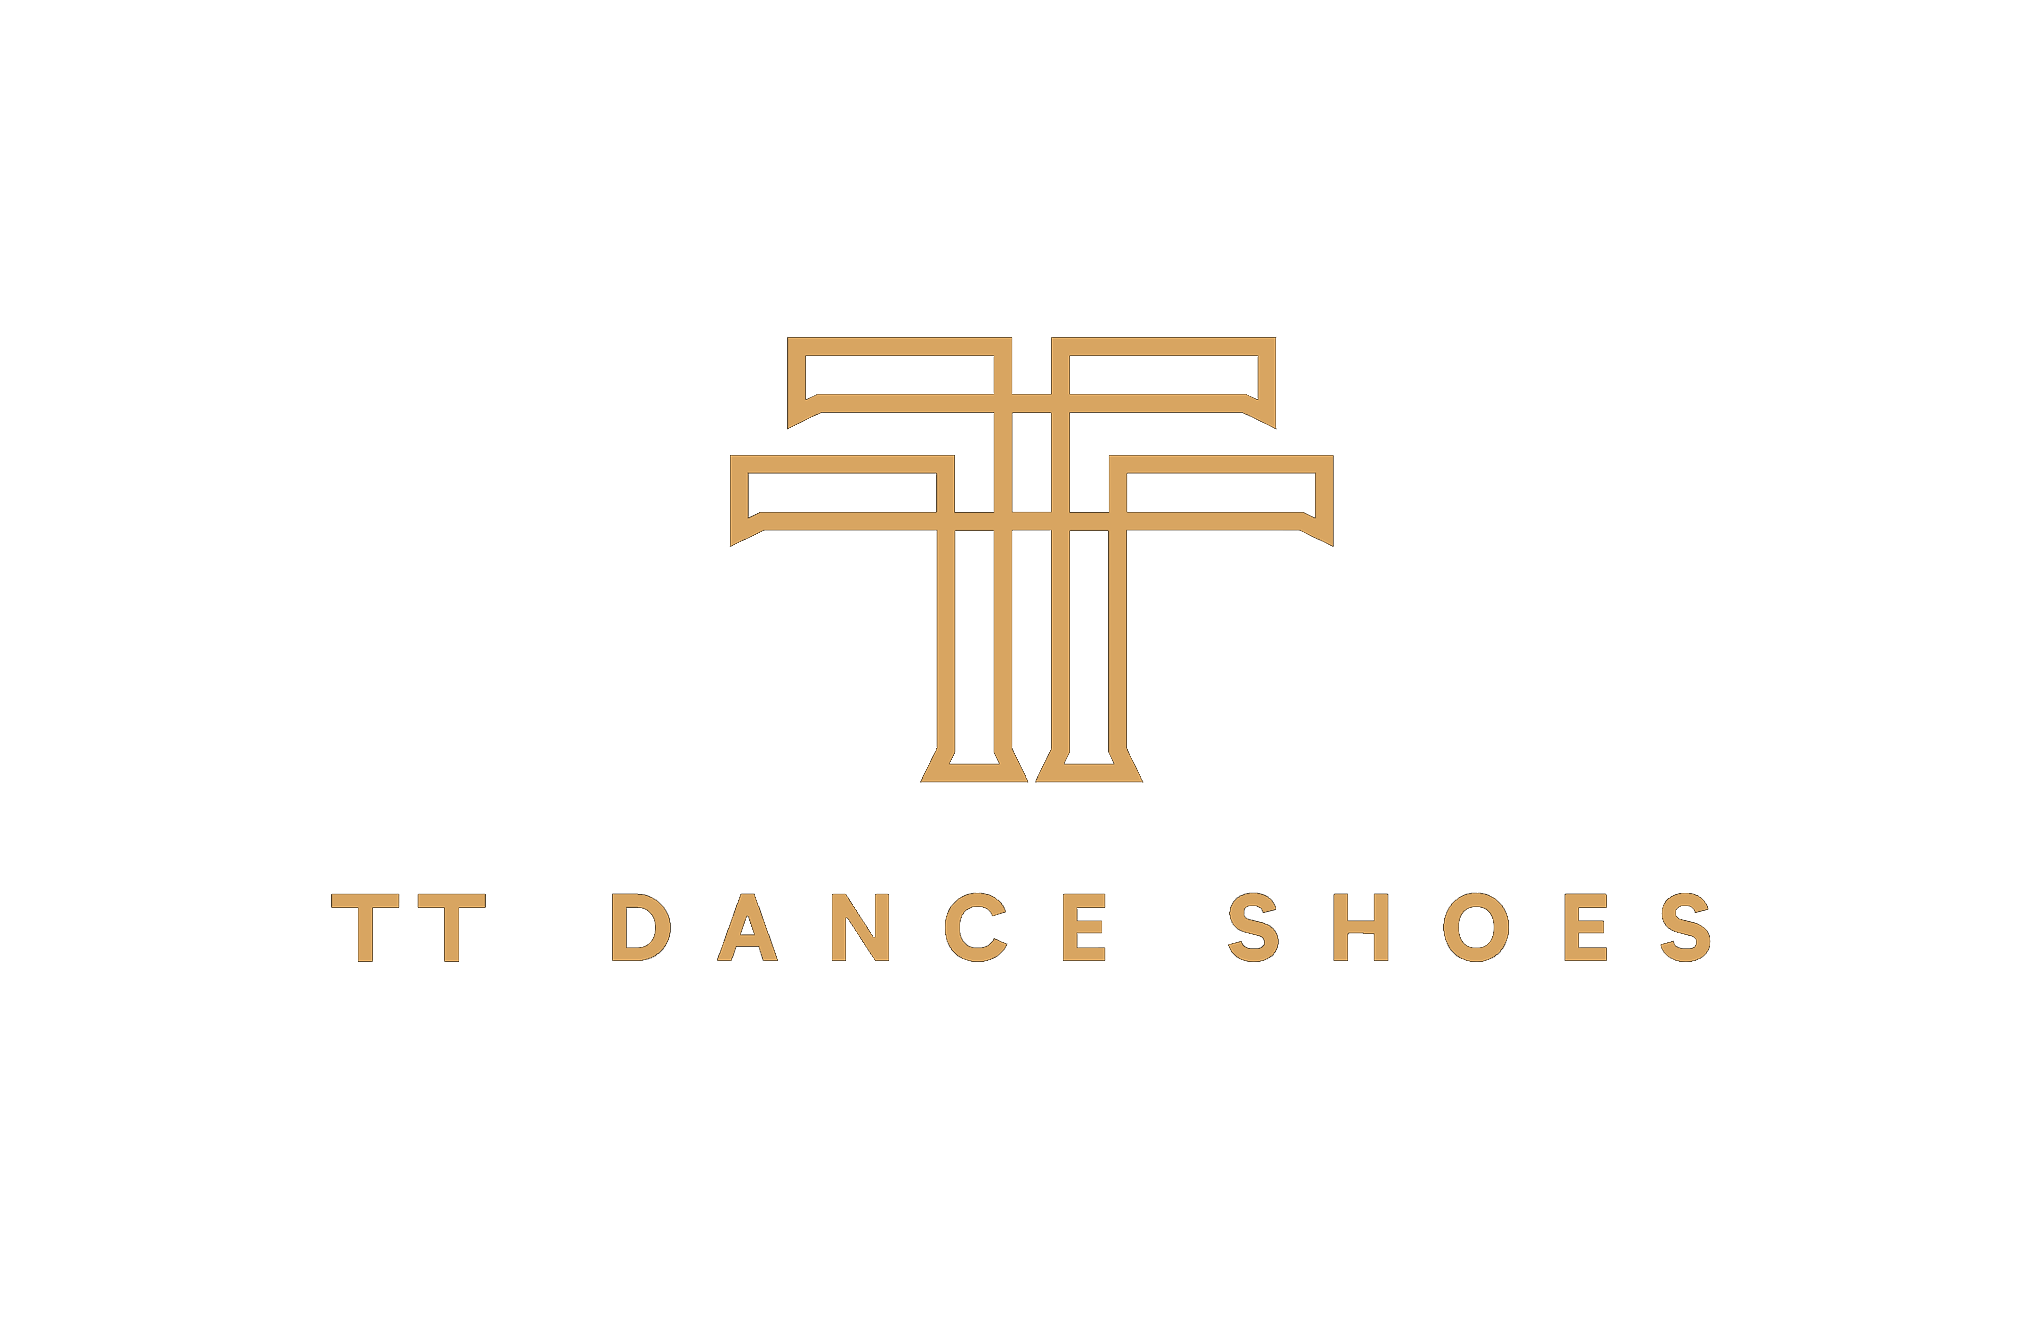 TT DANCE SHOES-HIGH QUALITY HANDMADE